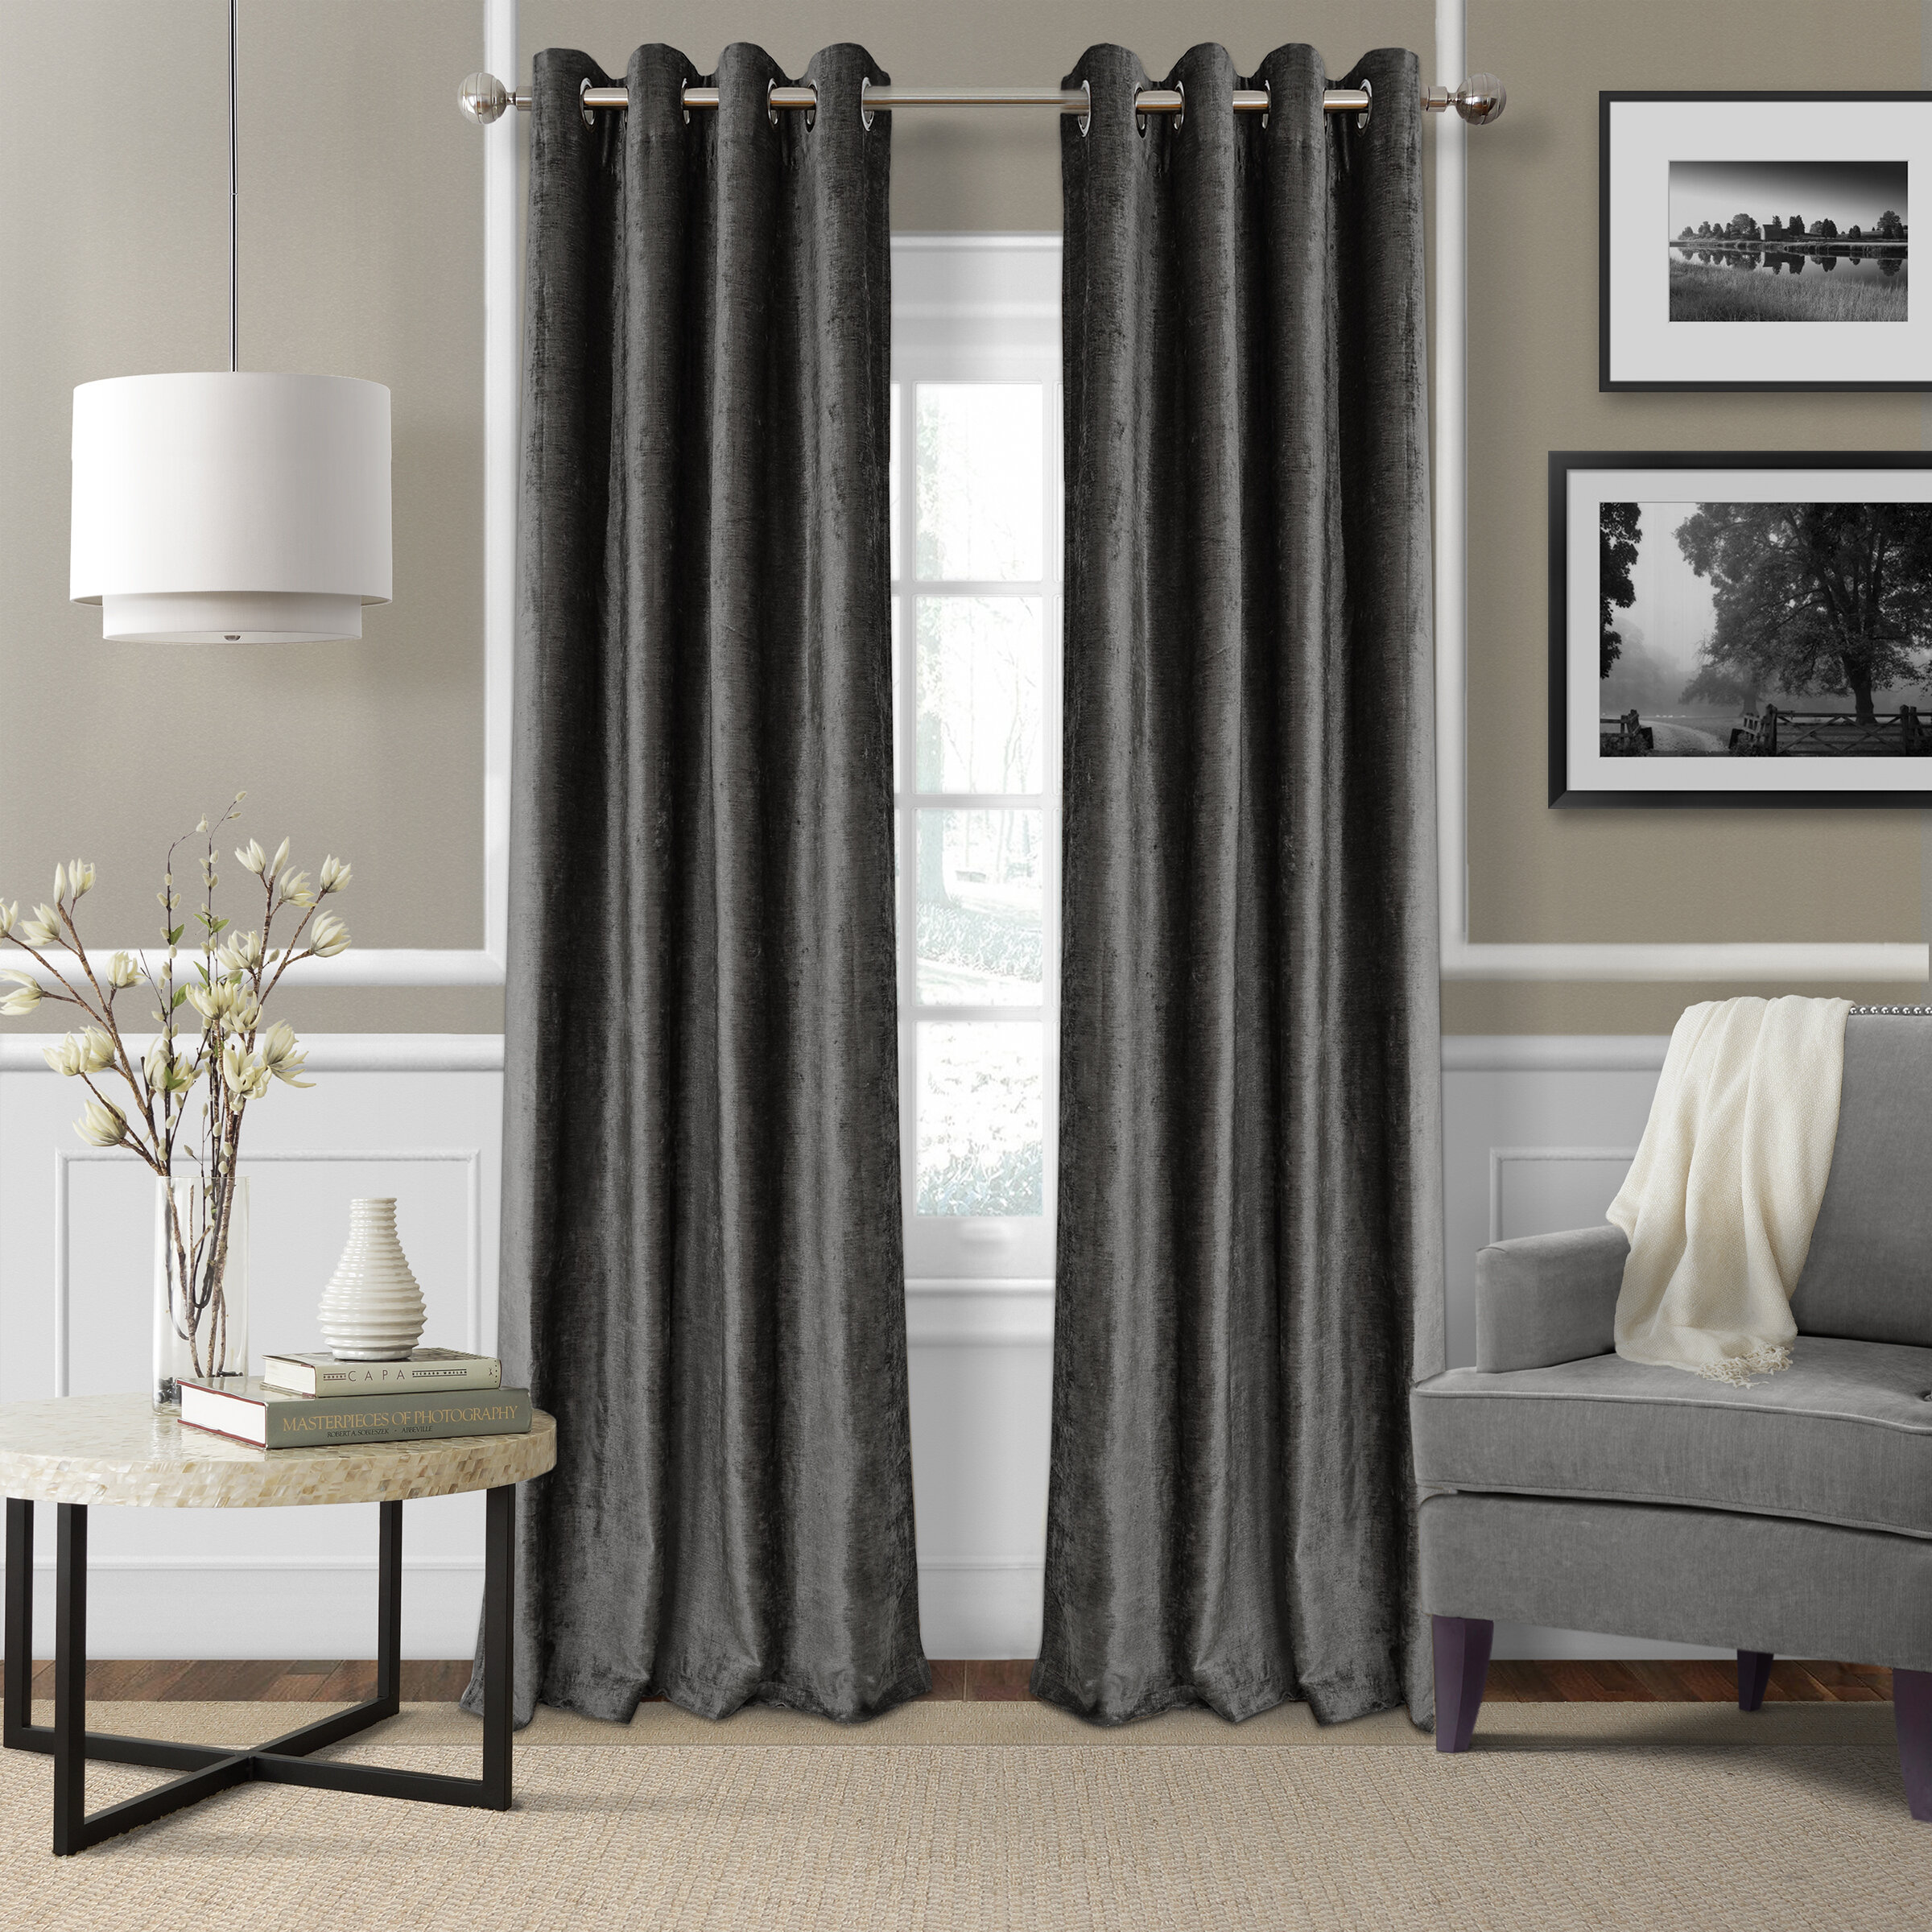 window buy next uk online pin tone the from band eyelet shop sequin curtain curtains